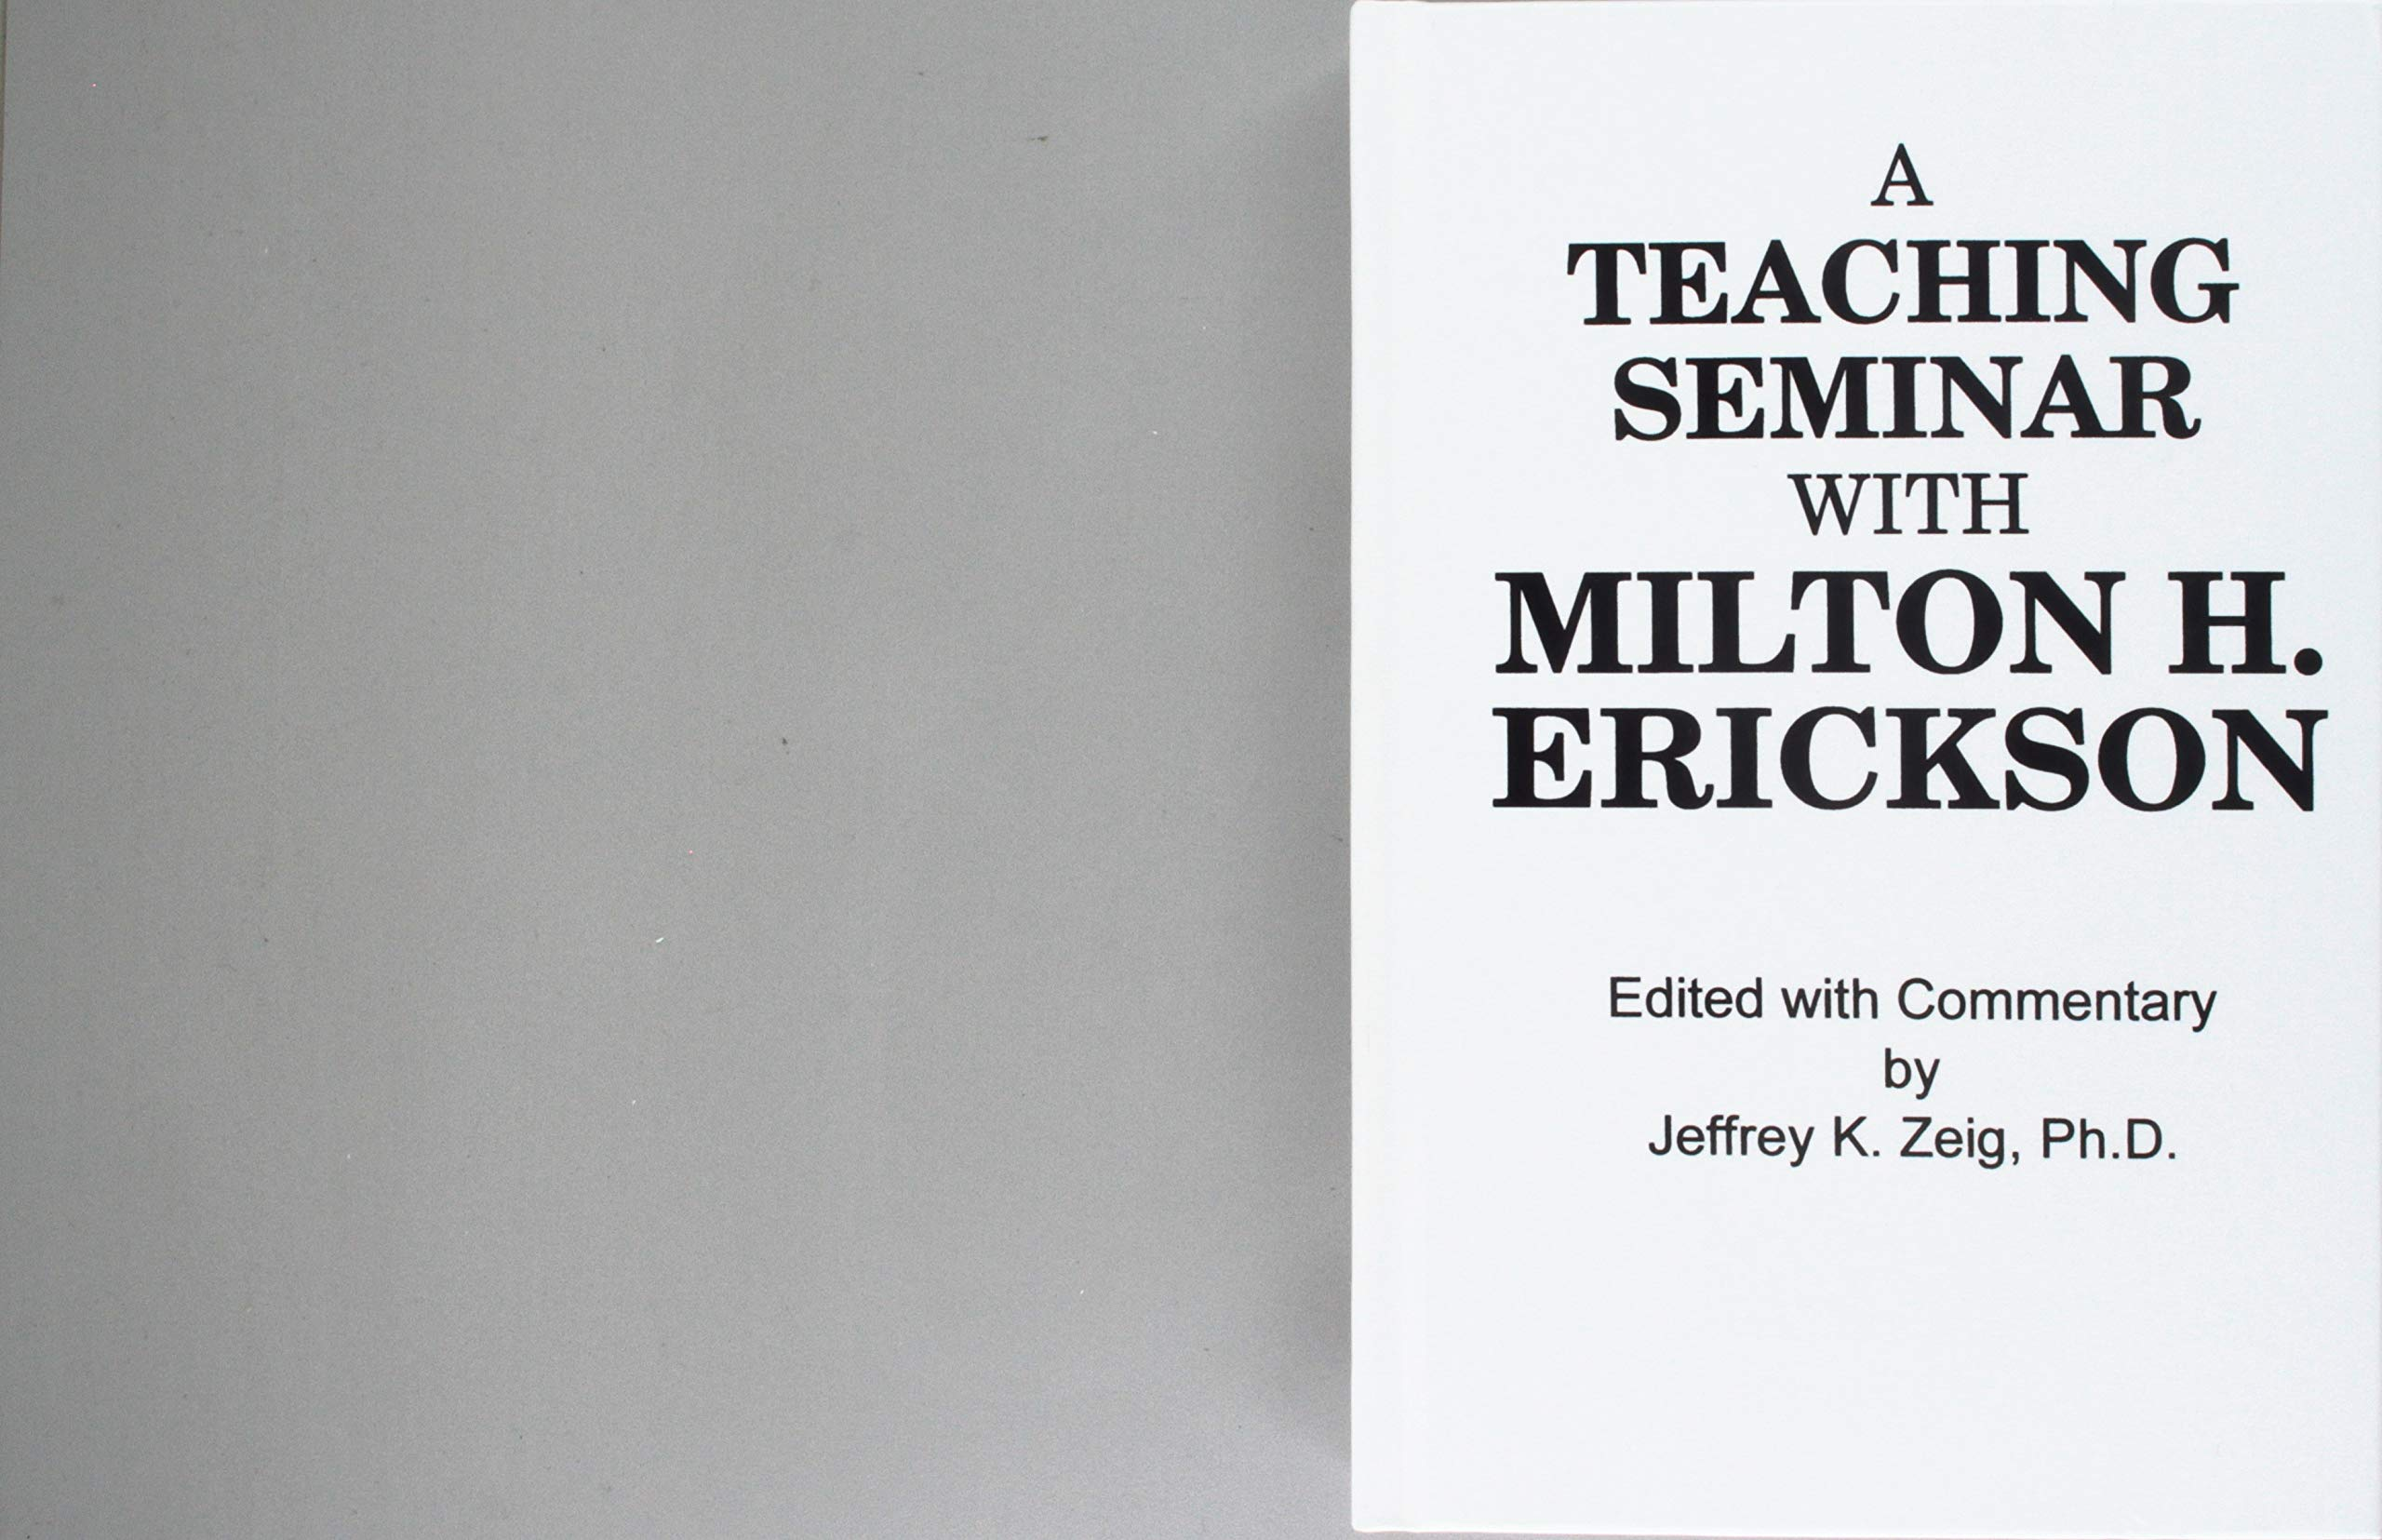 Teaching Seminar With Milton H. Erickson